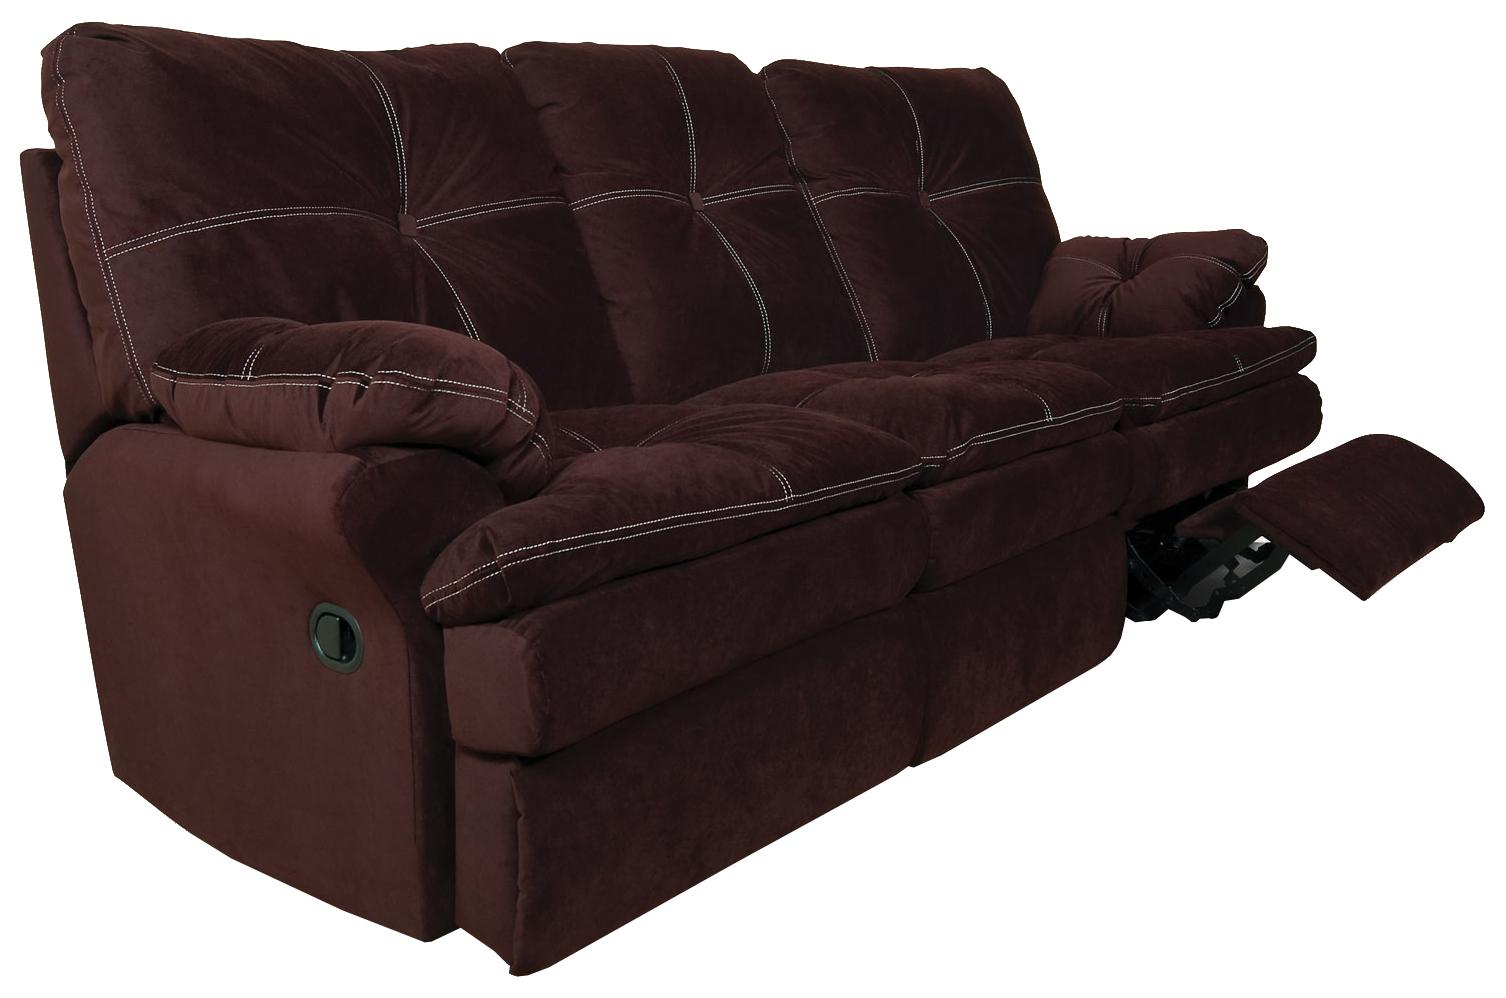 England Miranda and Lloyd  Double Reclining Sofa - Item Number: 3011 F